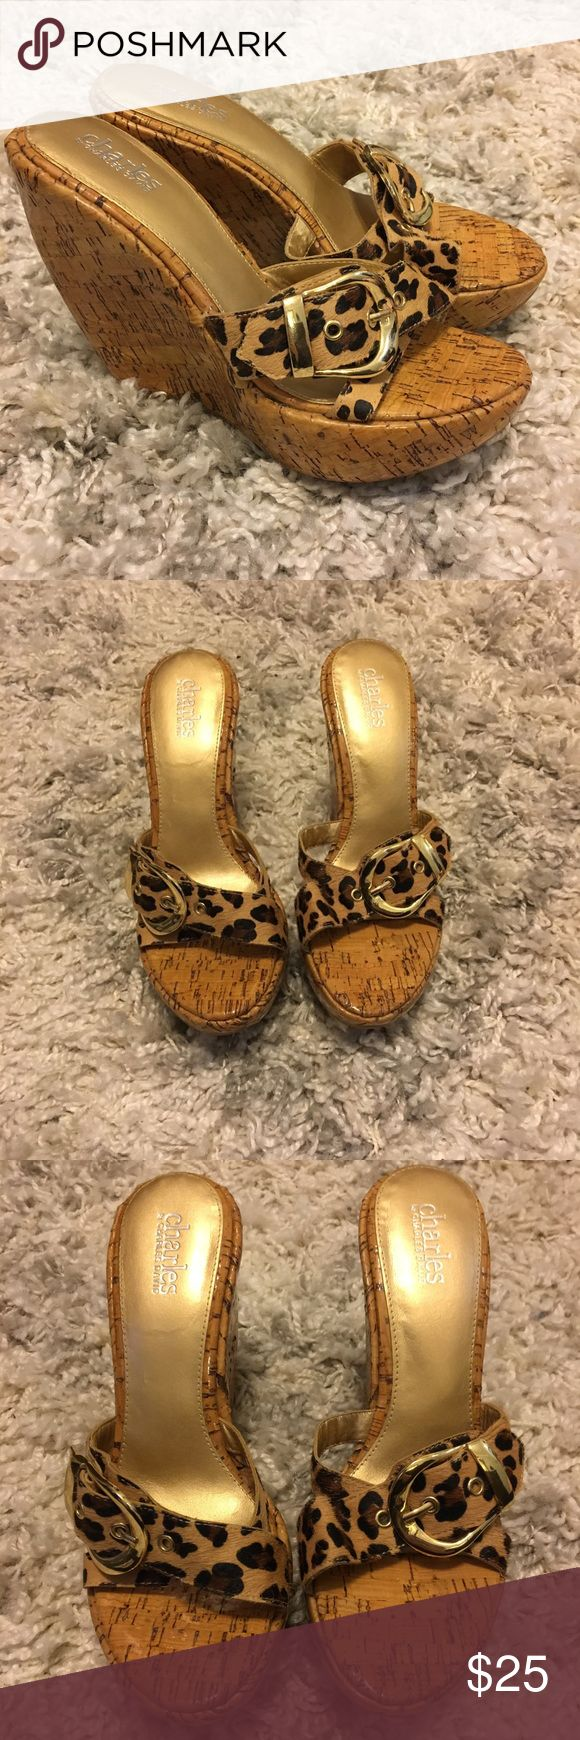 Charles David animal print platform mule. Size 8 Charles David animal print with gold buckle. Size 8. Excellent like new condition. Charles David Shoes Mules & Clogs